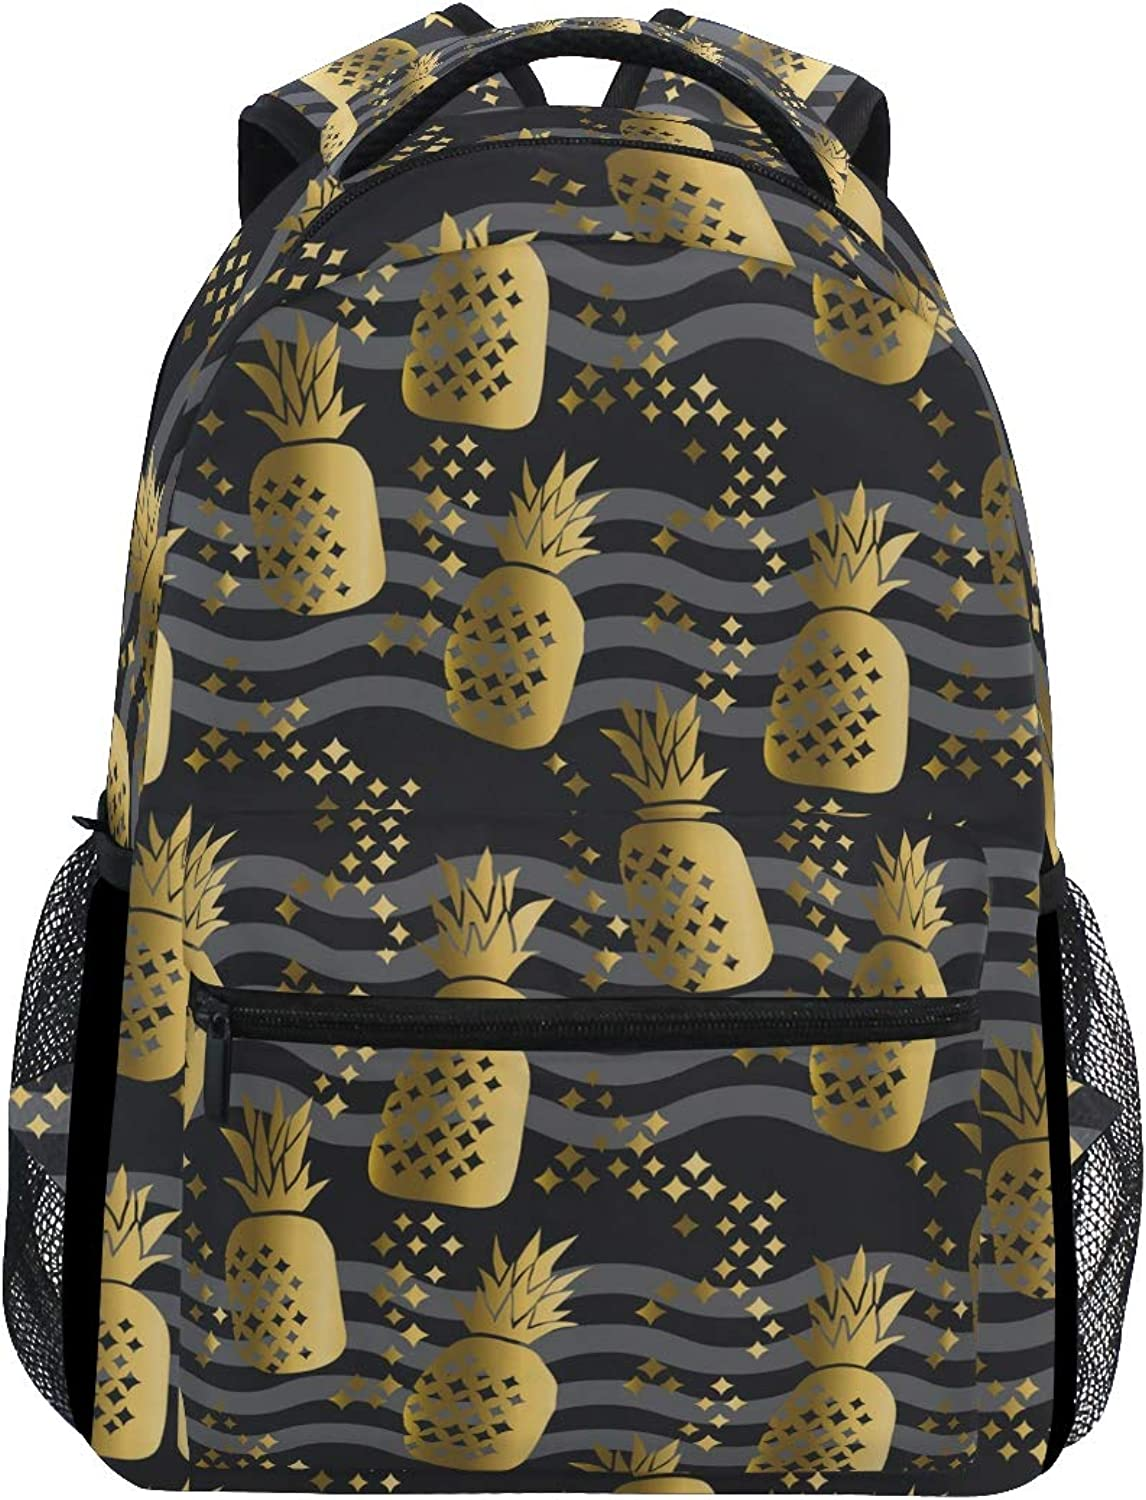 gold Pineapple Party Trekking Backpack Fashion Backpack Oversized Backpack Men and Women Durable Travel Computer Backpack 17 Inch Notebook Waterproof Large Business Bag